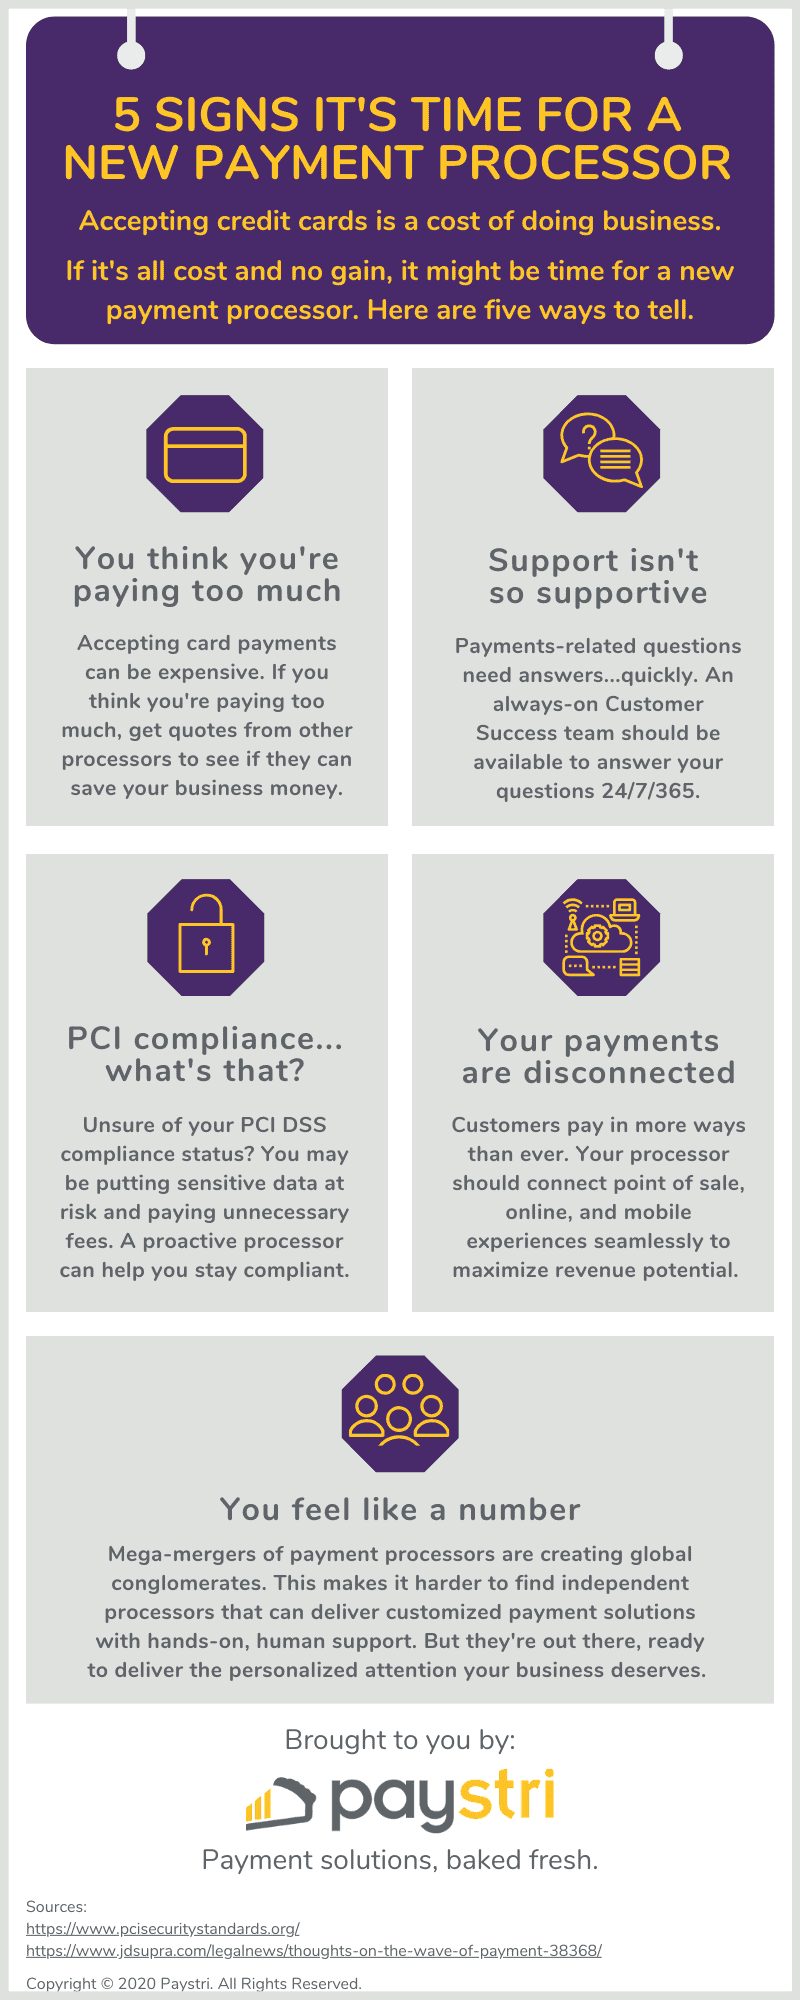 5 Signs It's Time for a New Payment Processor